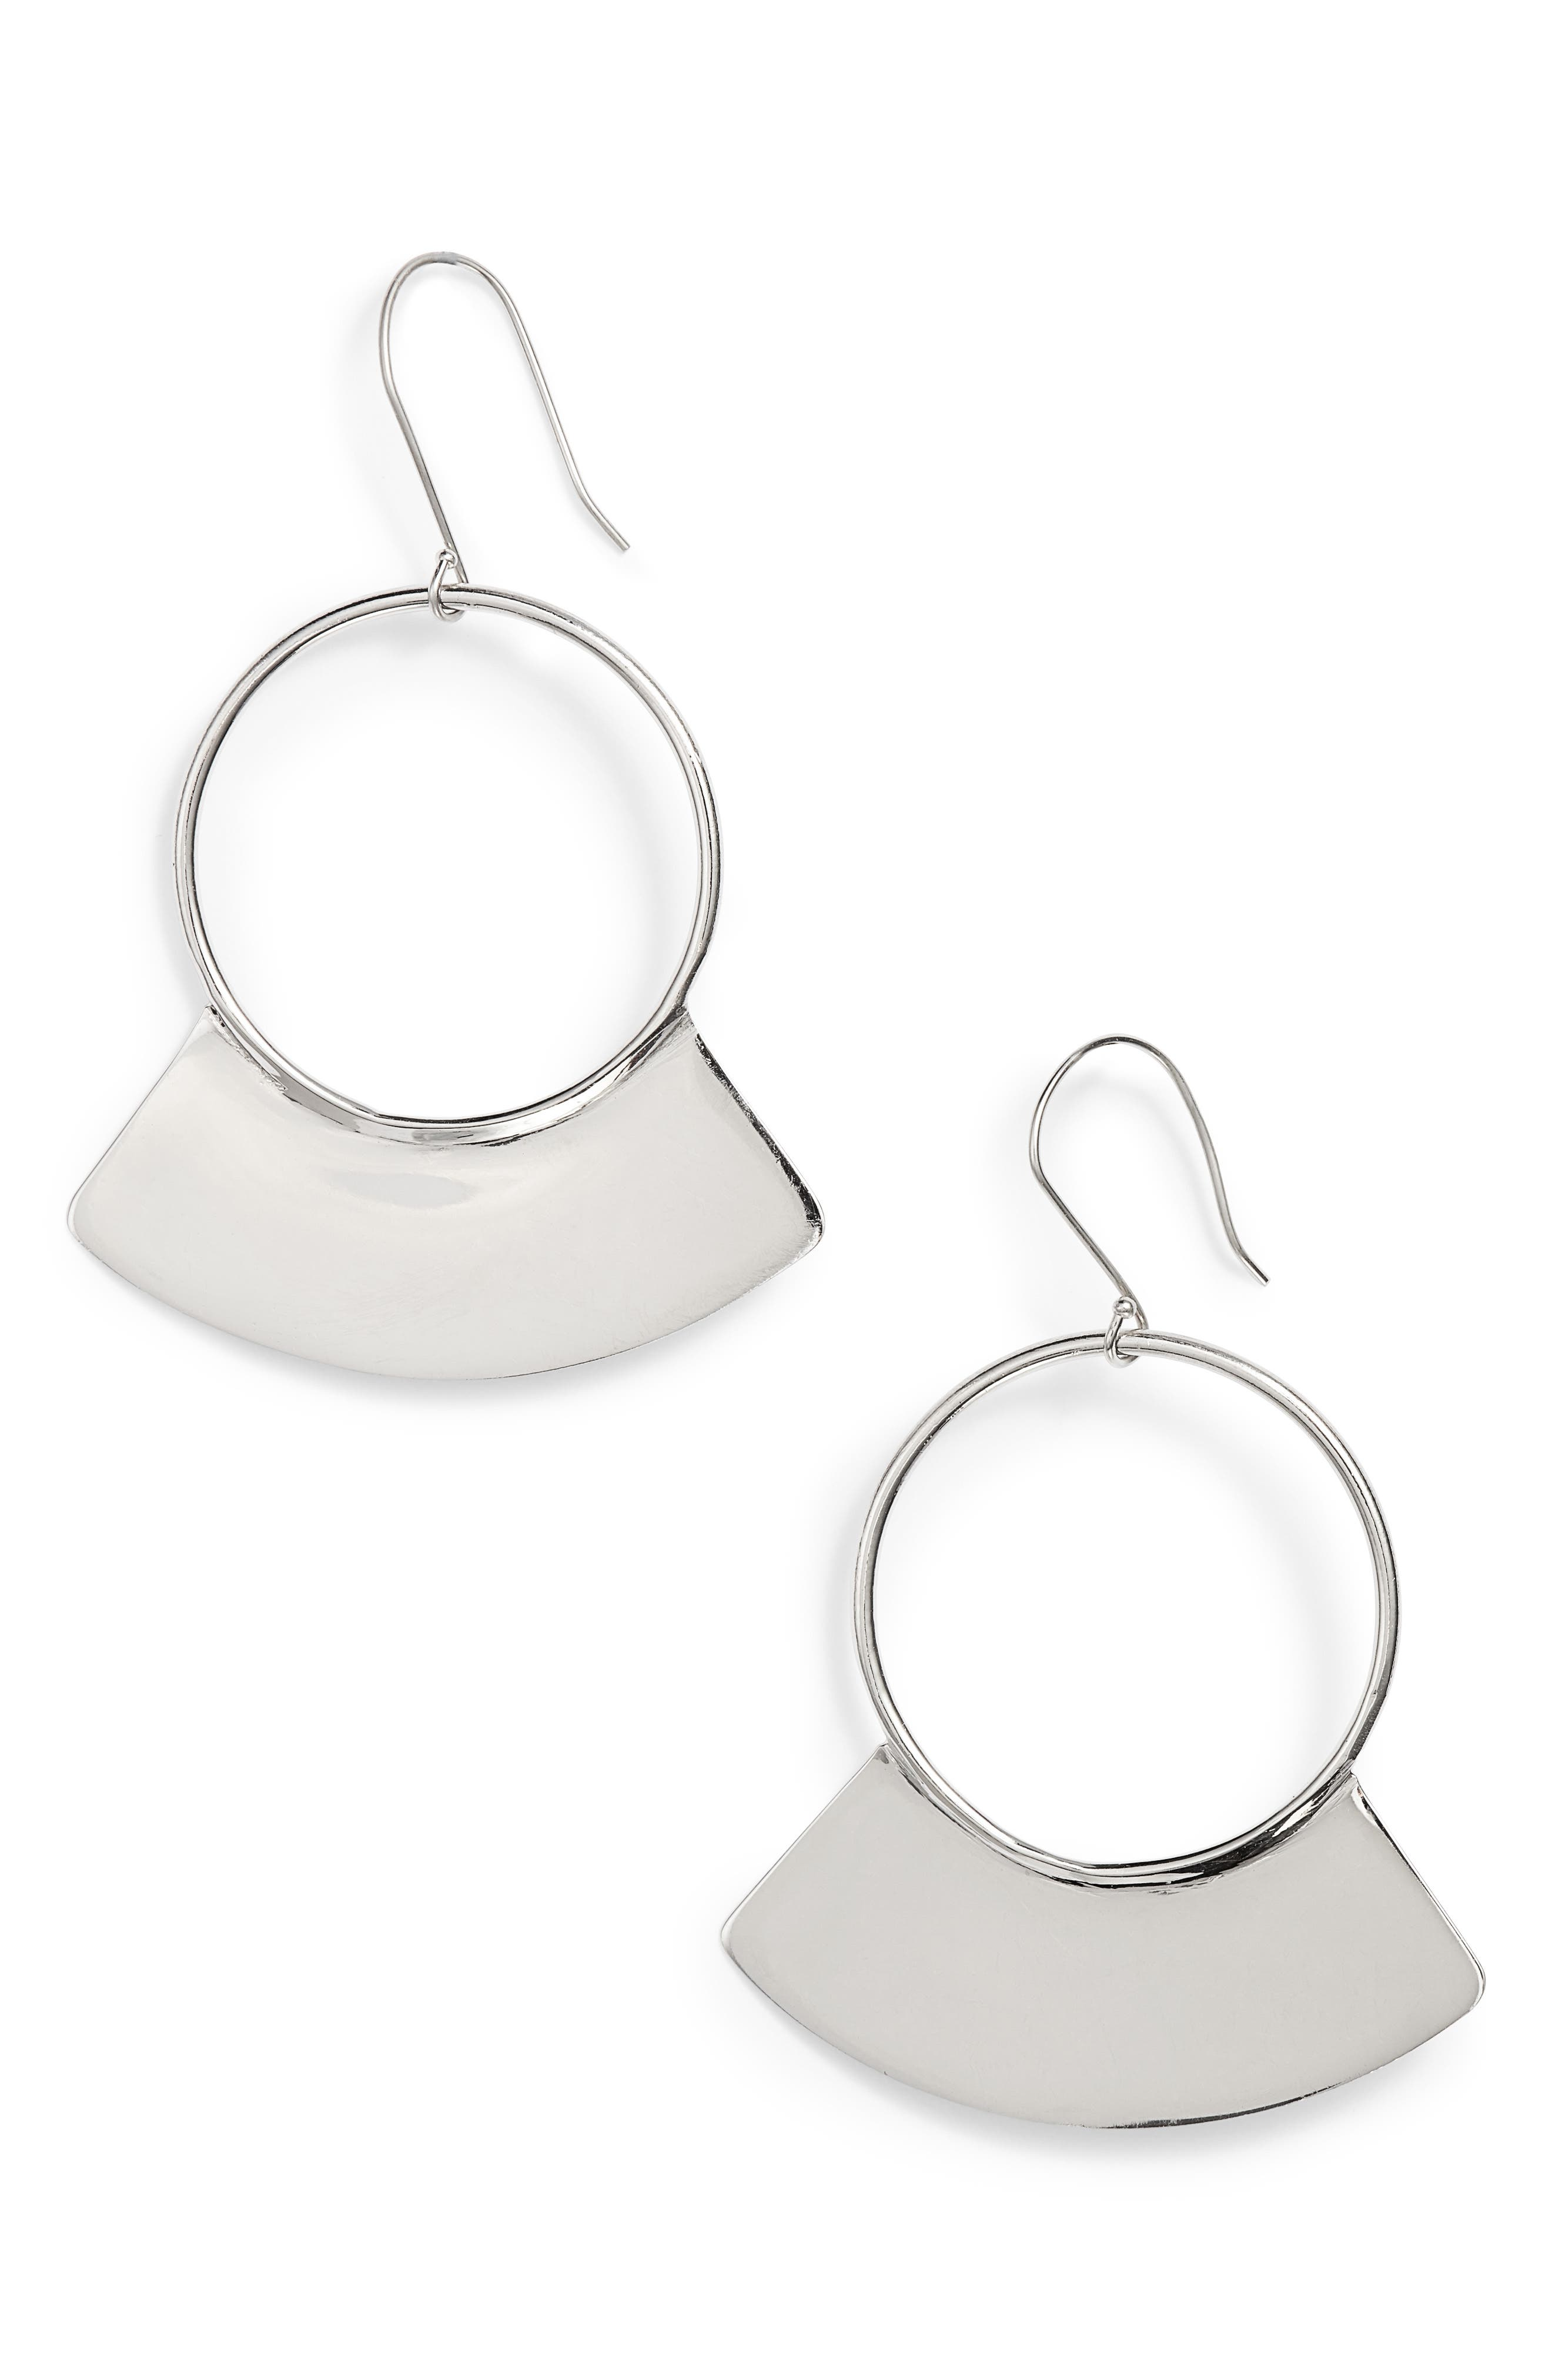 Paddle Earrings,                         Main,                         color, Silver